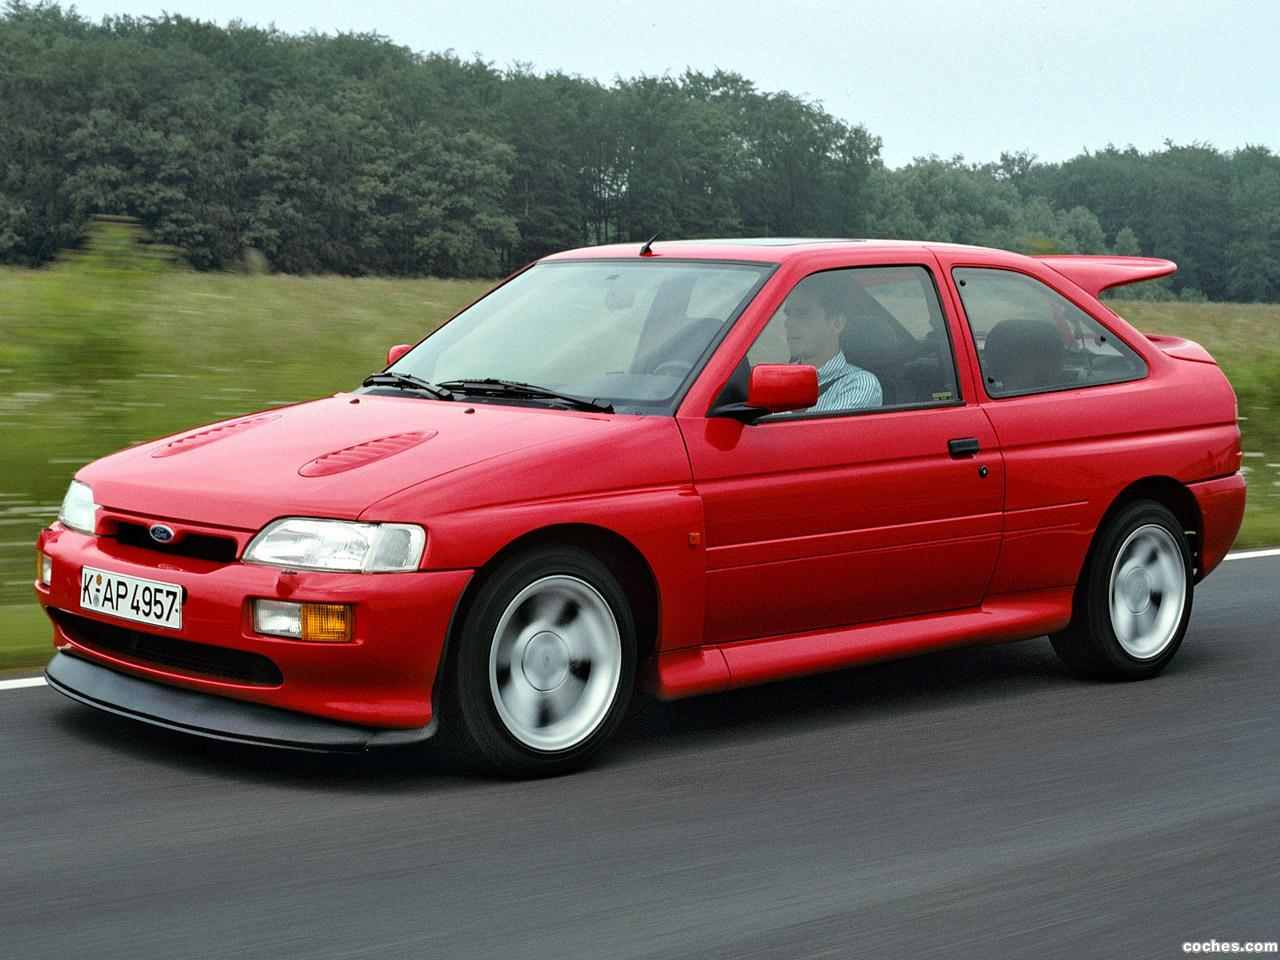 Fotos de Ford Escort RS Cosworth 1992